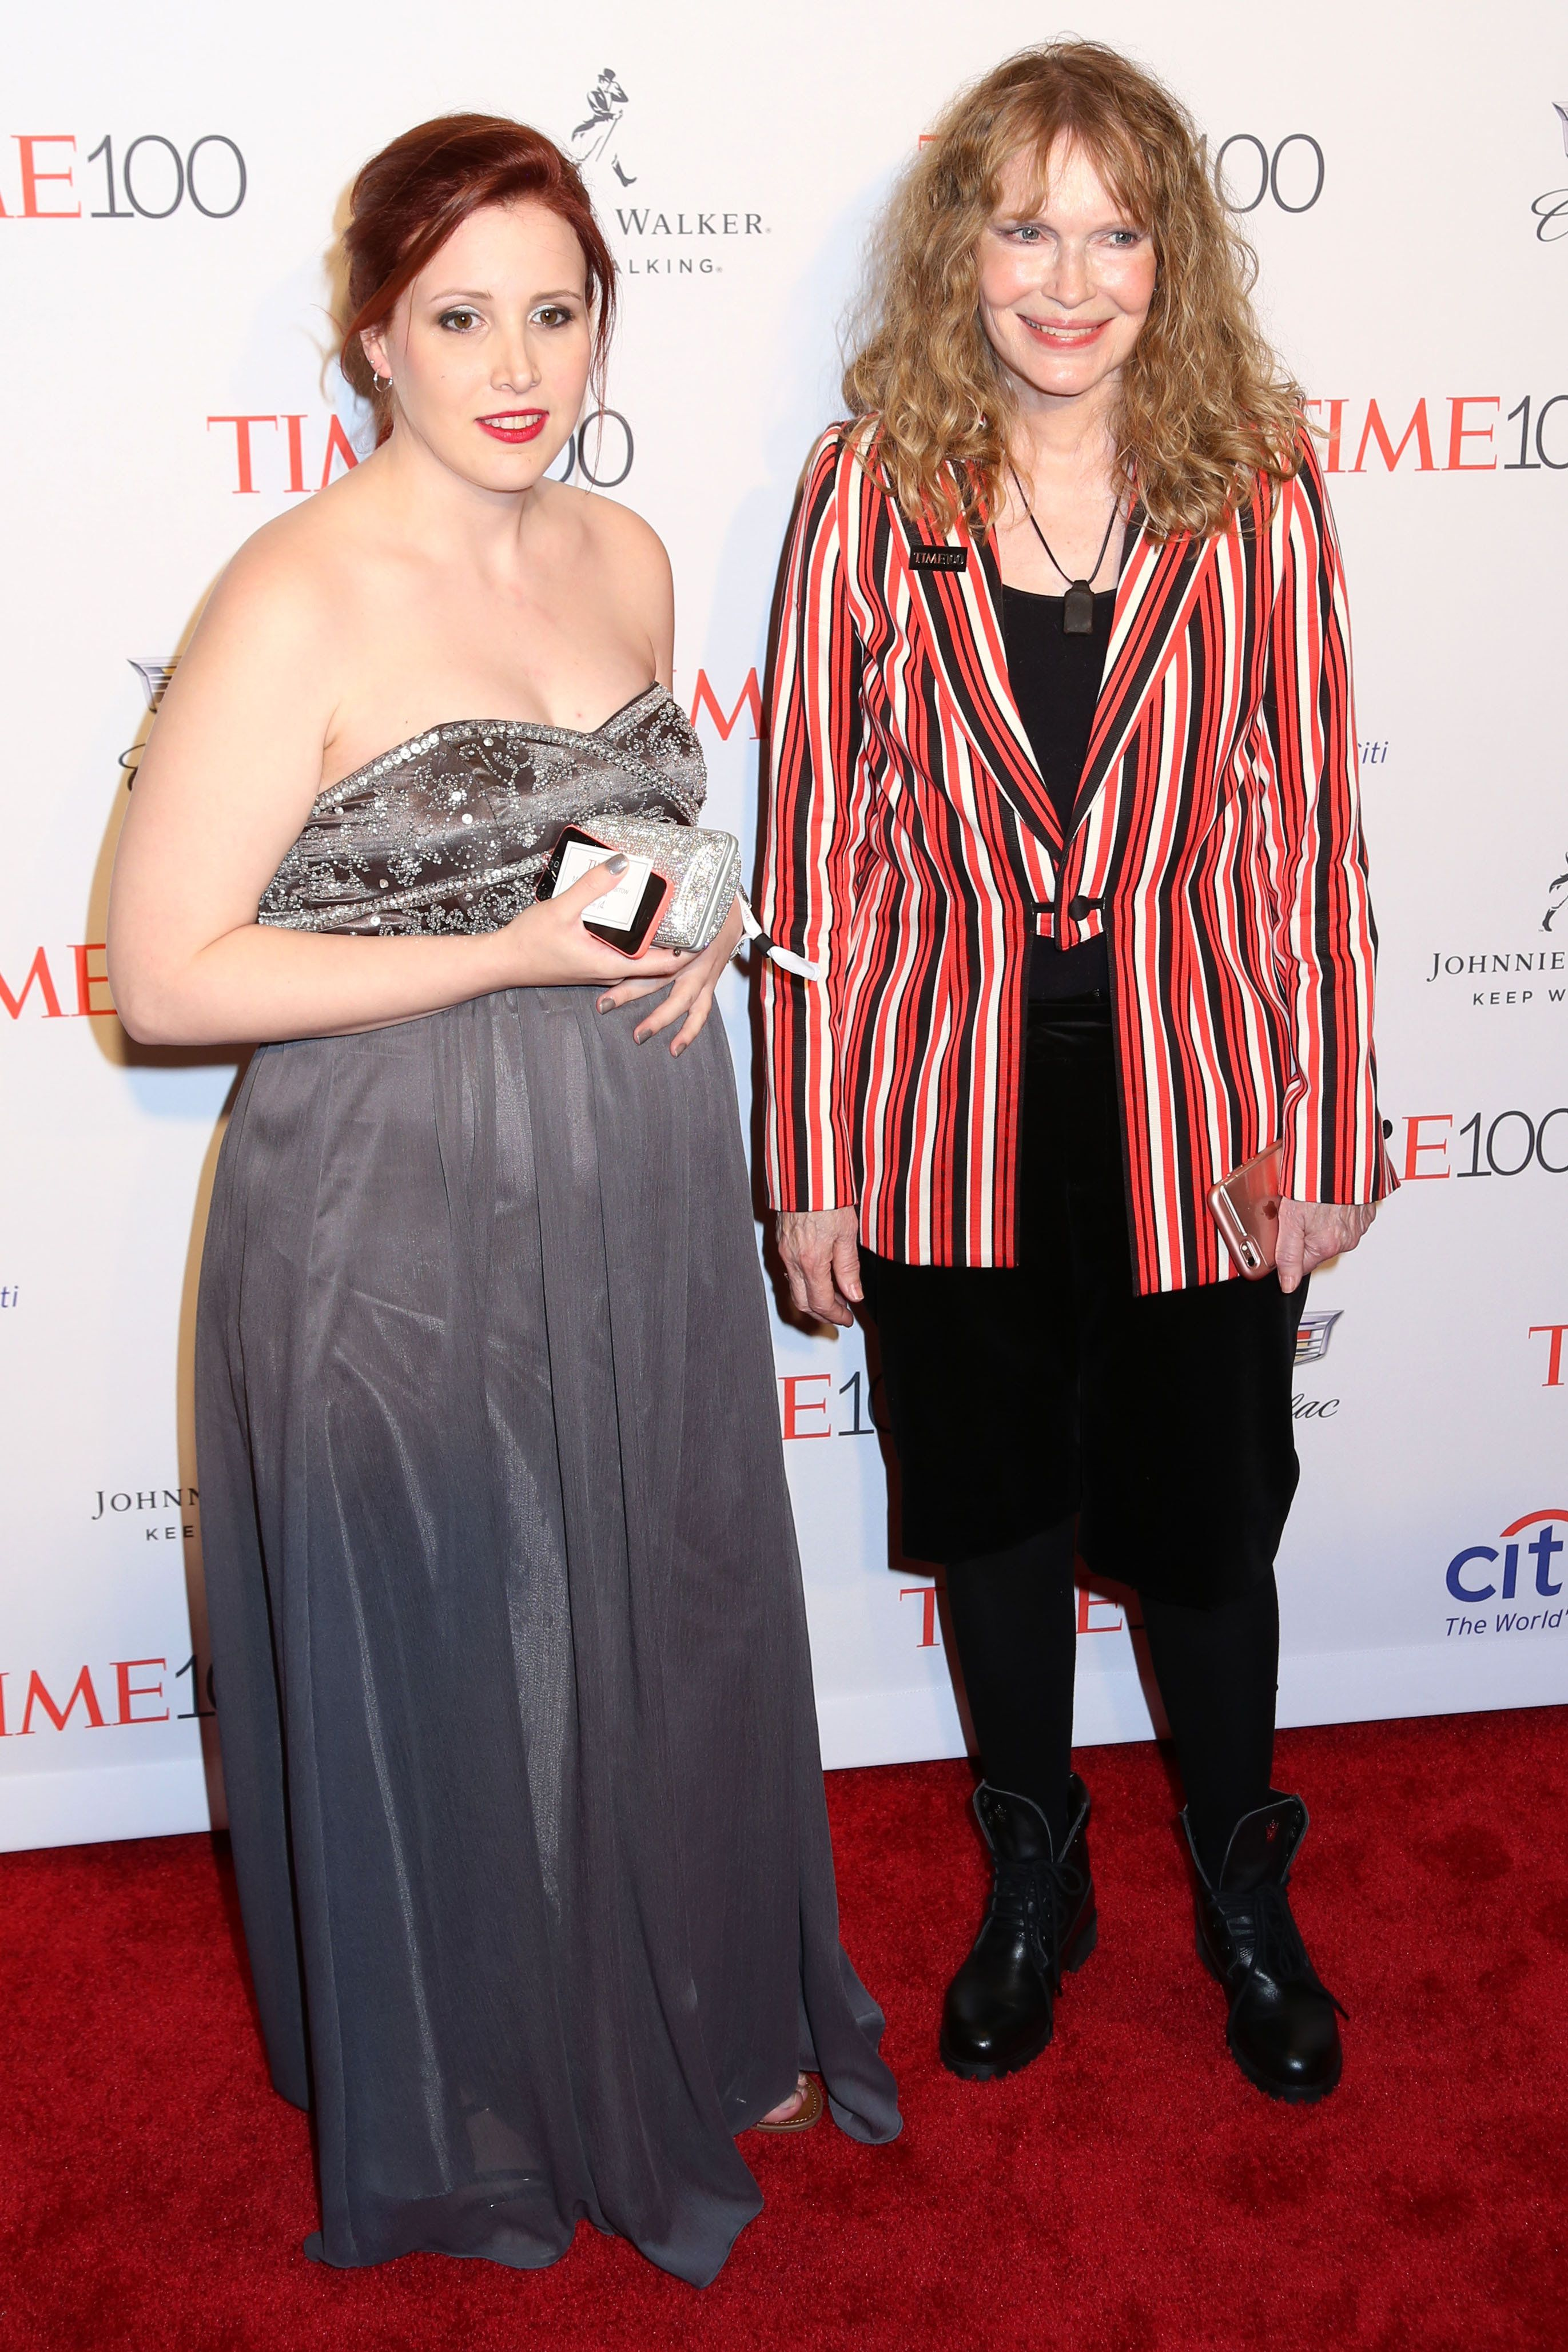 Dylan Farrow and Mia Farrow attend the 2016 Time 100 Gala at Fredrick P. Rose Hall in New York.